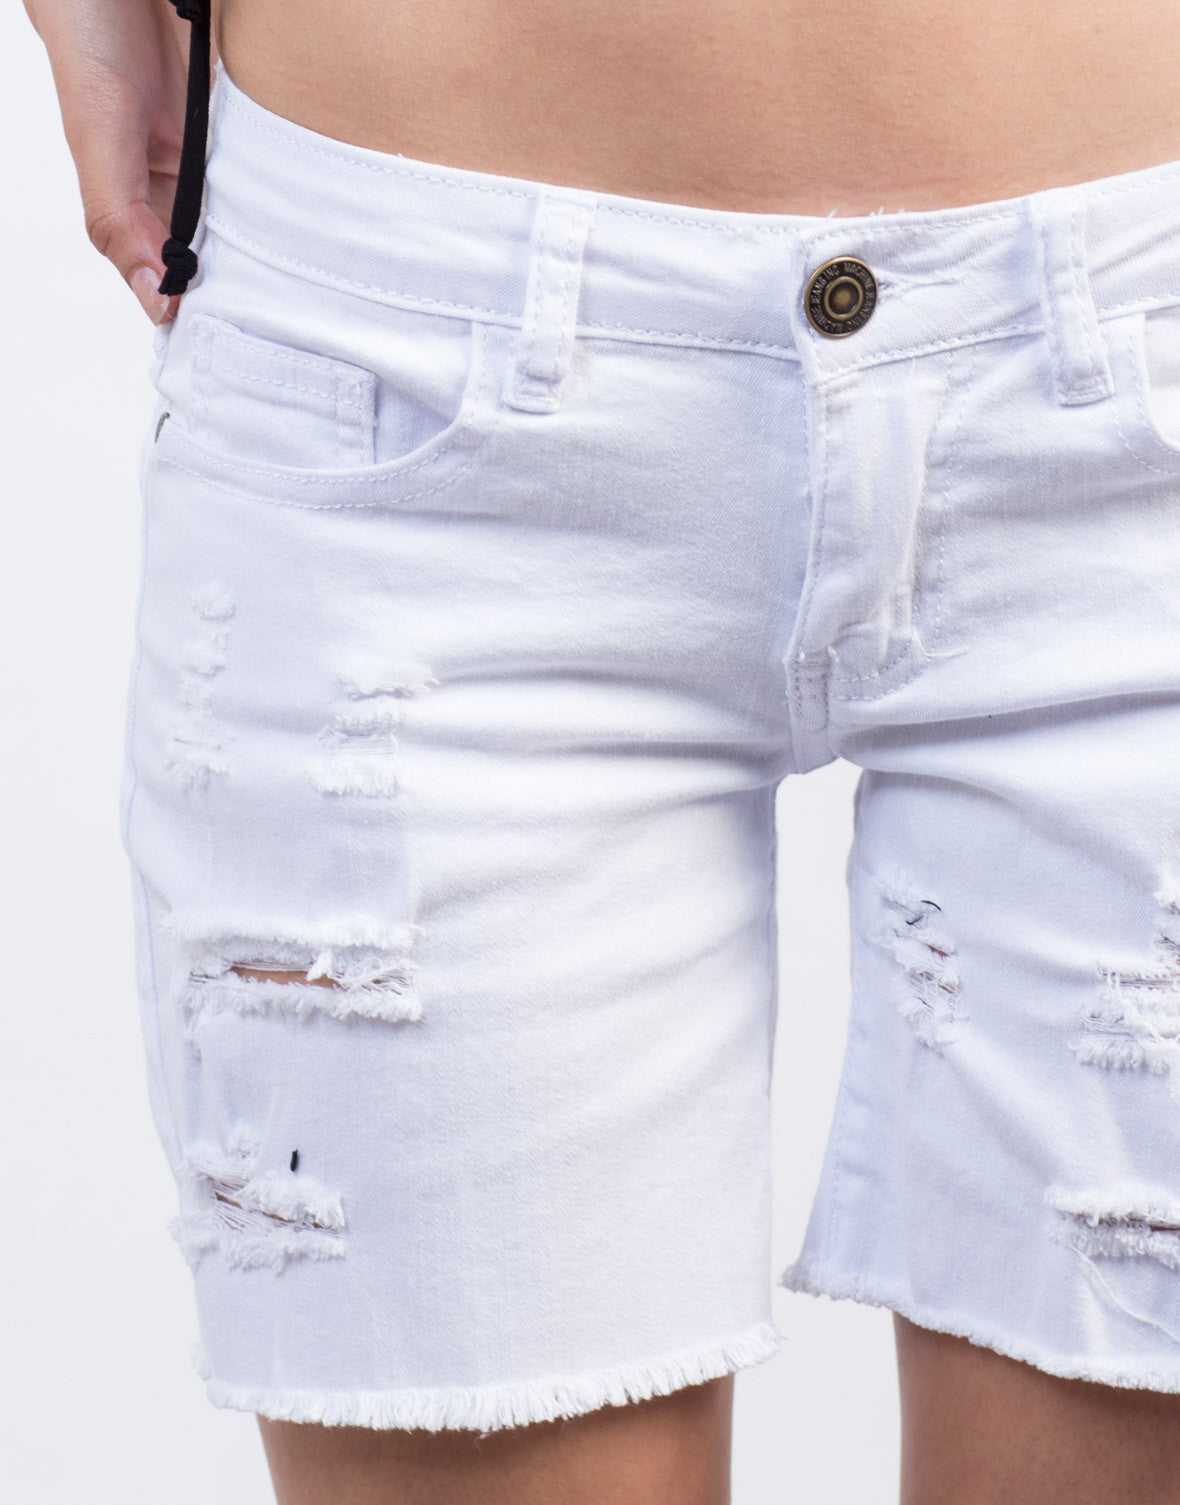 UPF sun protection Water repellent fabric Garment pigment dyed / enzyme washed Faded worn-in look Comfort fit with full elastic waist Attached belt Zip secure back pocket Gusset detail Adjustable leg openings Inseam: 11